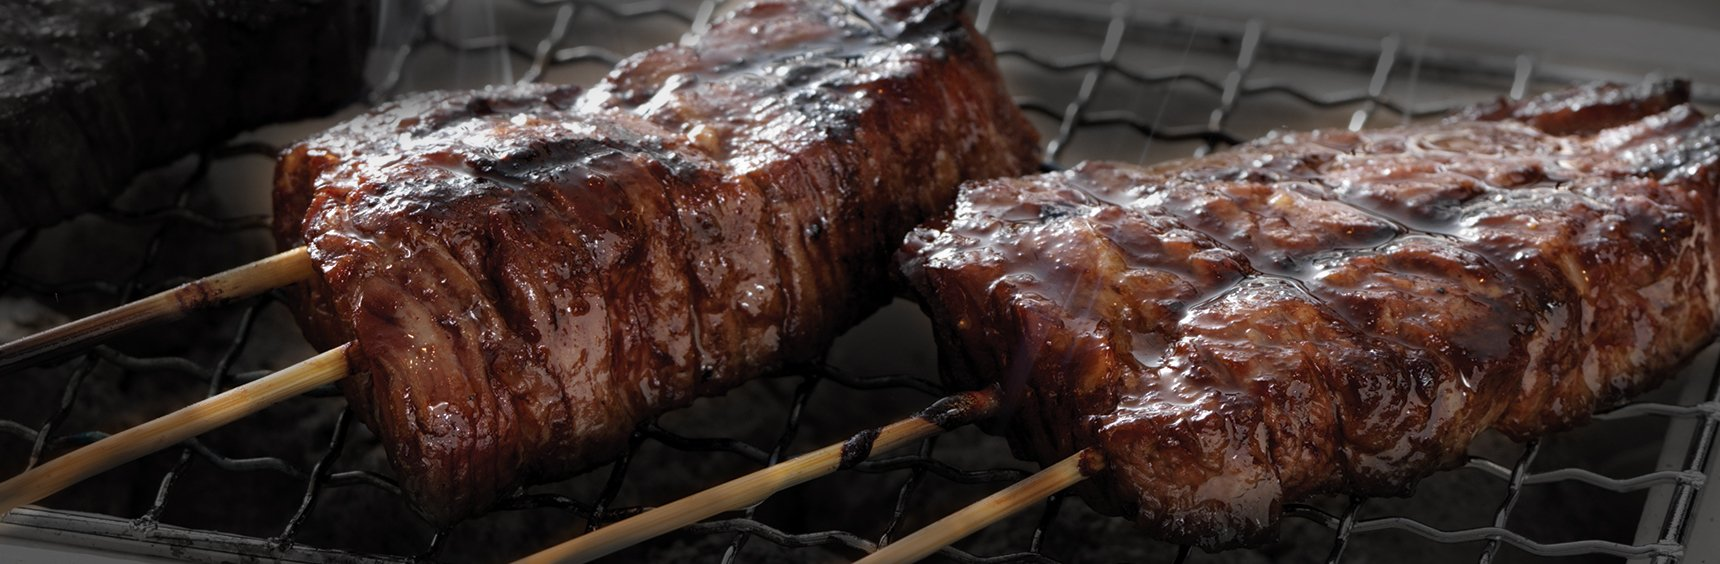 Japanese beef skewers on grill